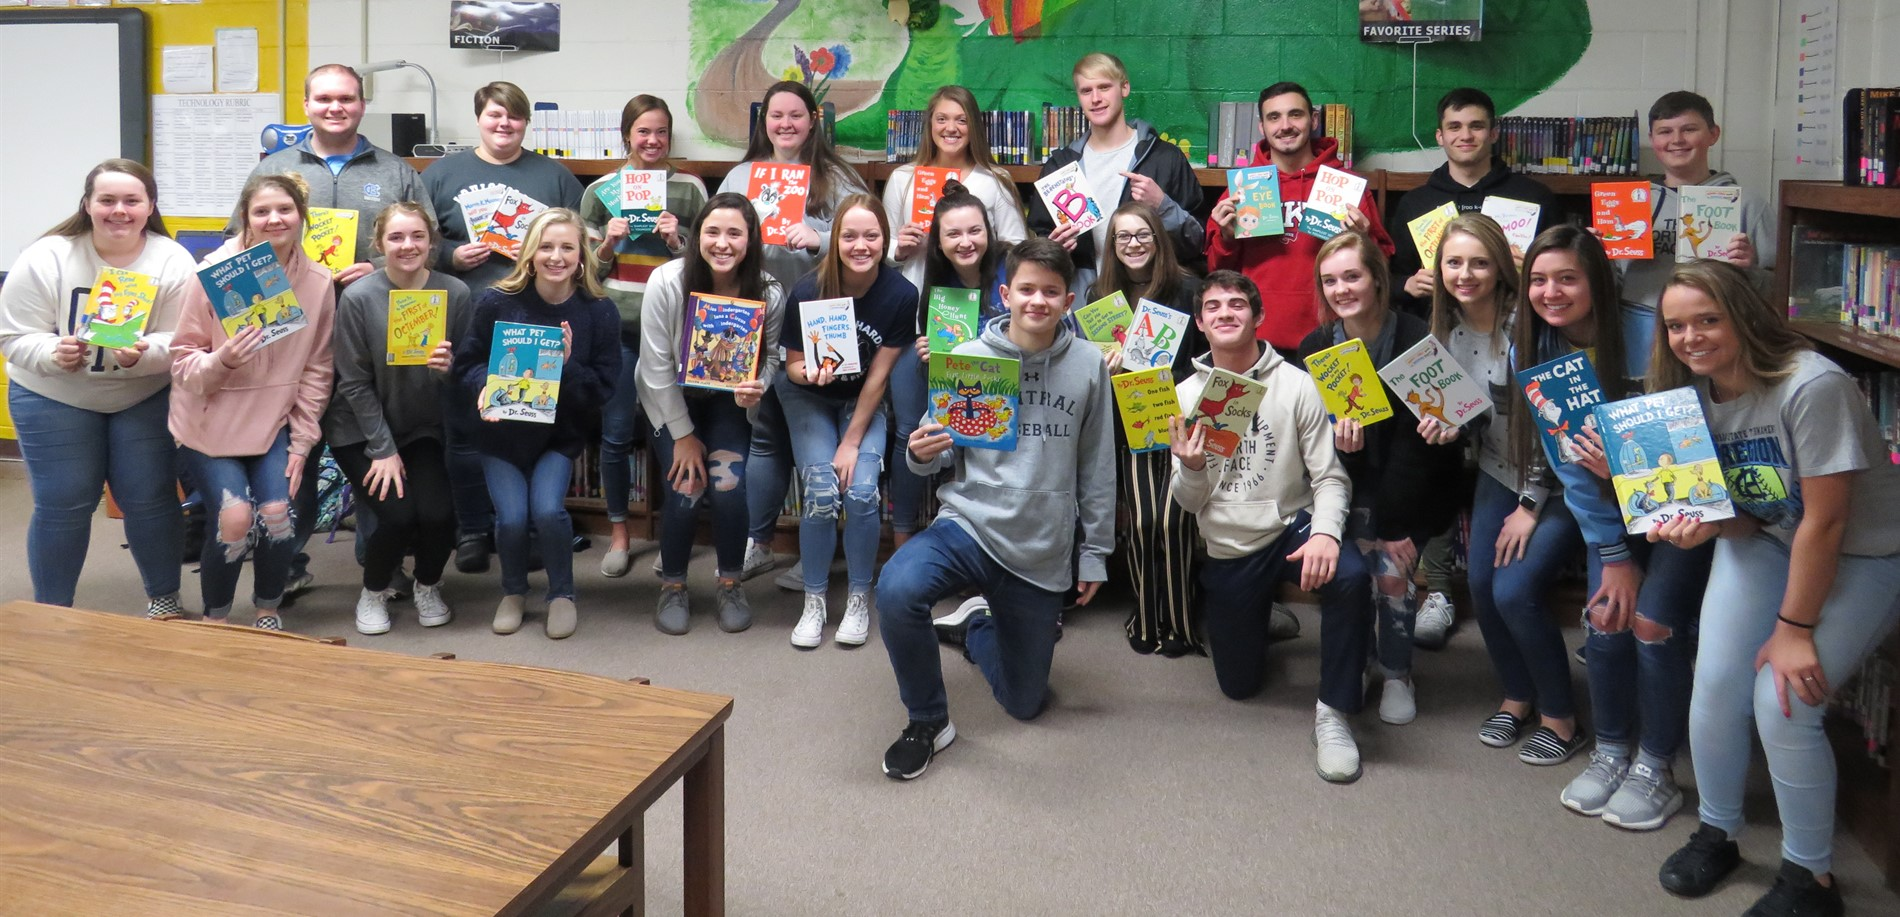 CHHS Students - Read Across America Day